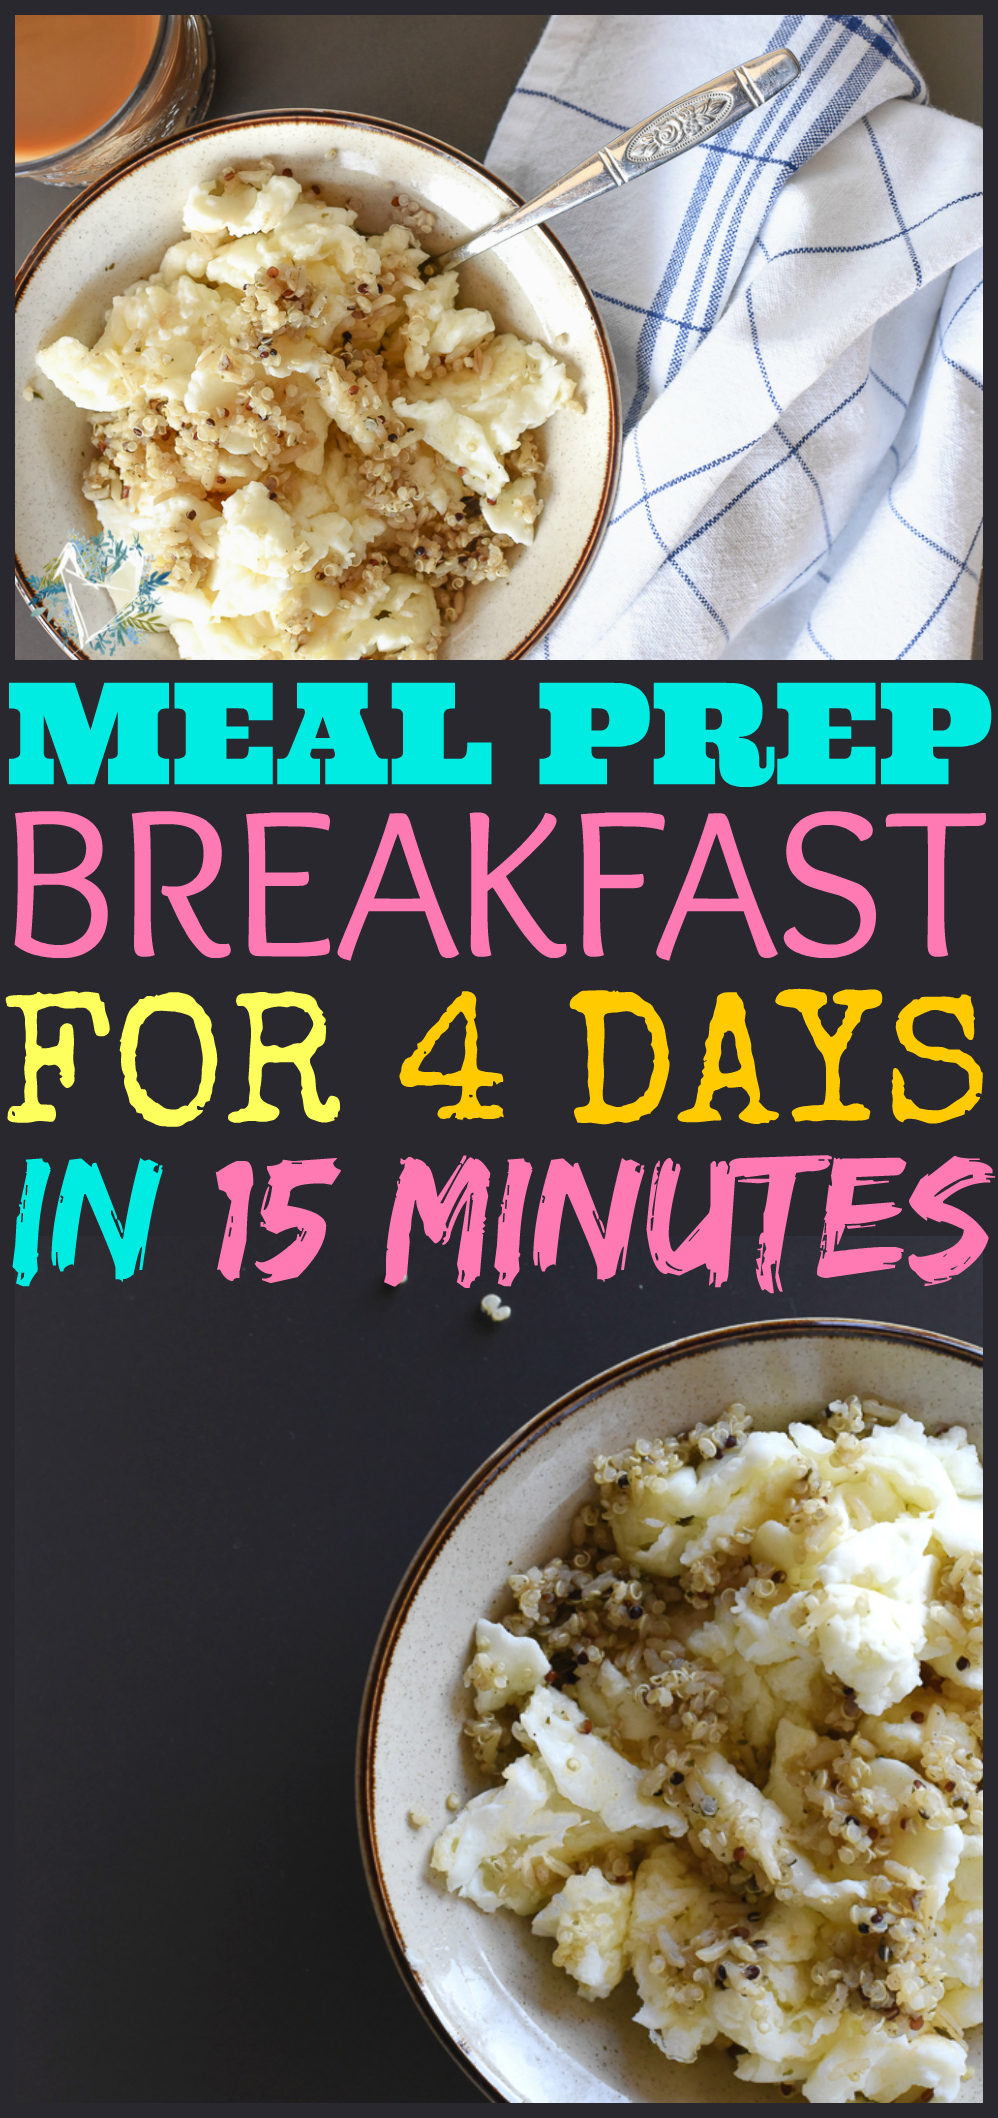 HOW I COOK BREAKFAST FOR 4 DAYS IN 15 MINUTES. This clean eating two ingredient recipe will change your life!